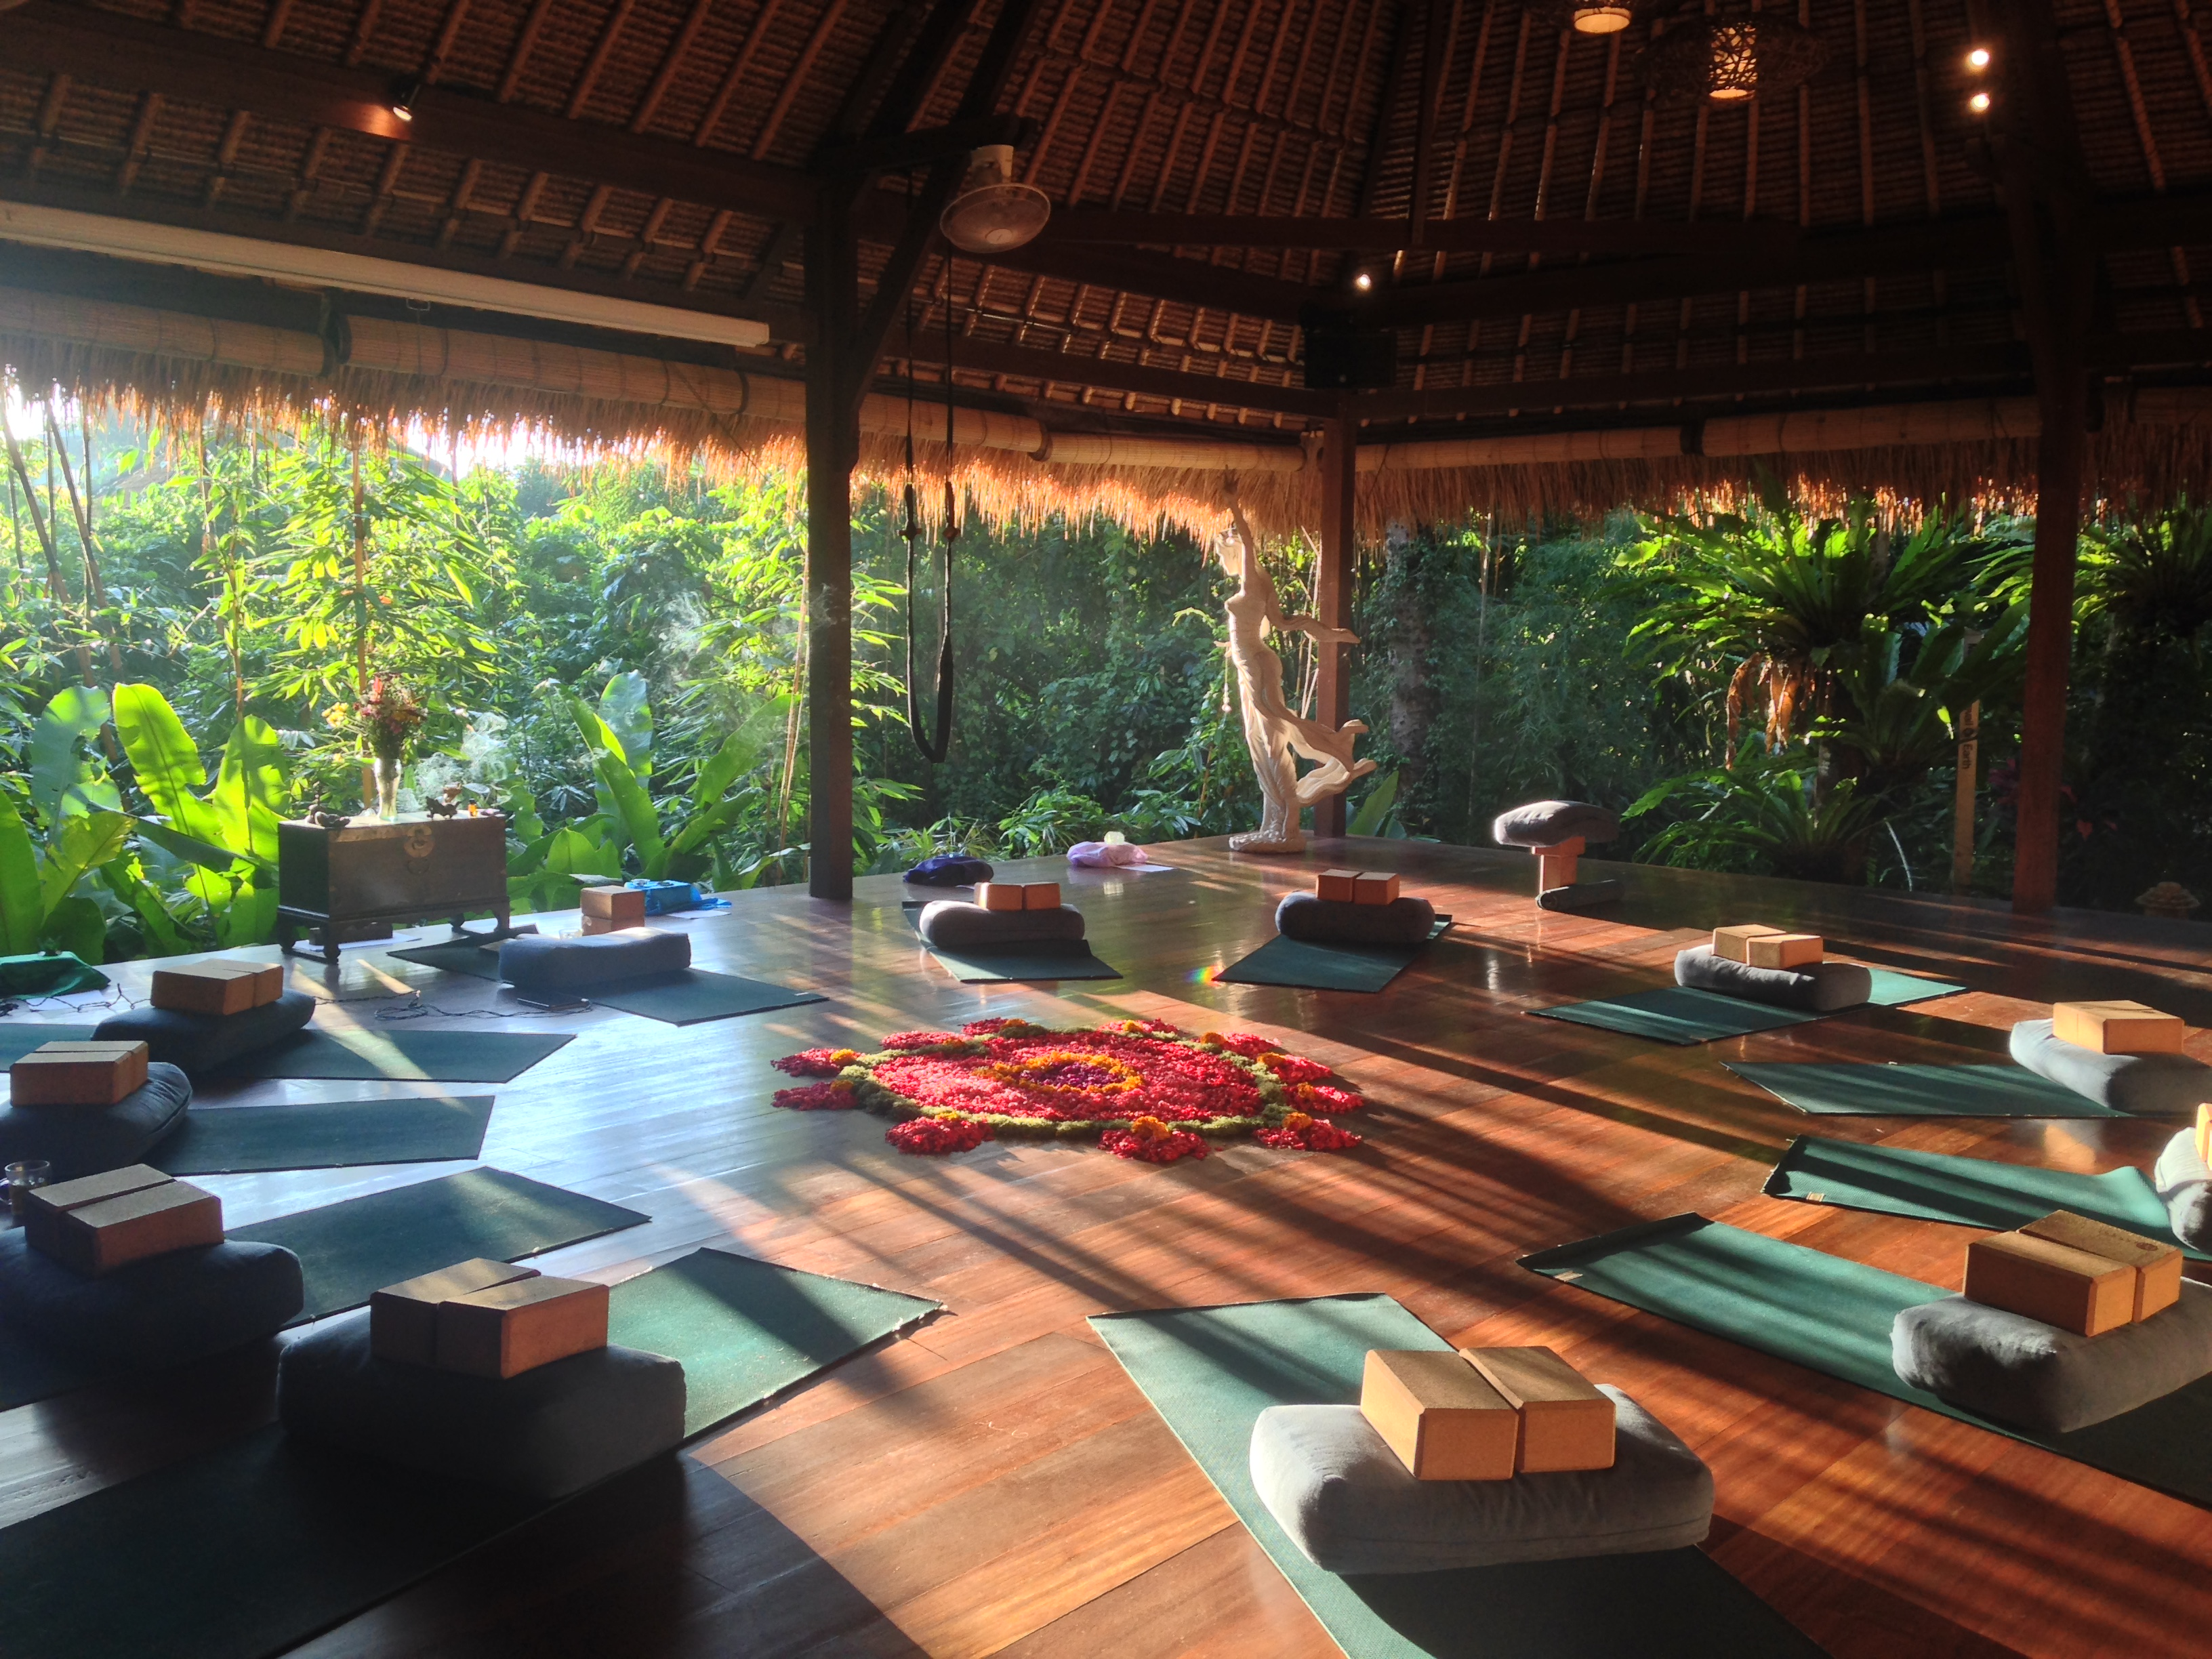 Naya Ubud yoga shala—a thatched roof pavilion where yoga classes are typically held.